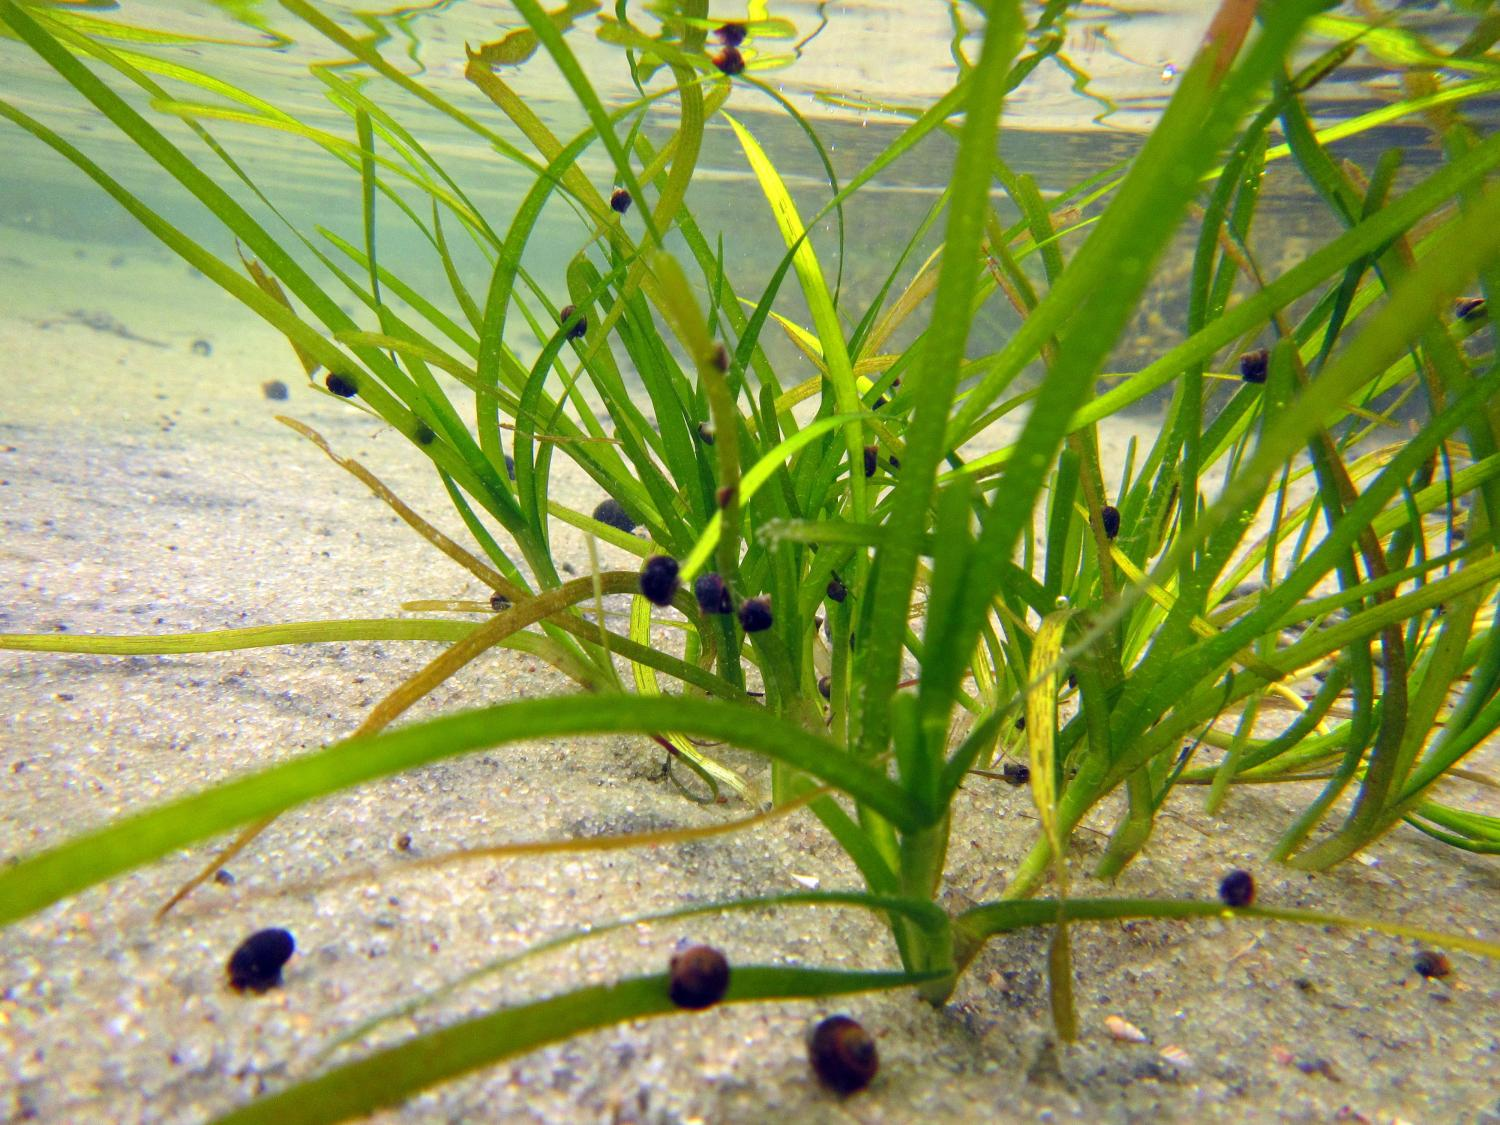 seagrass restoration threatened by fungi